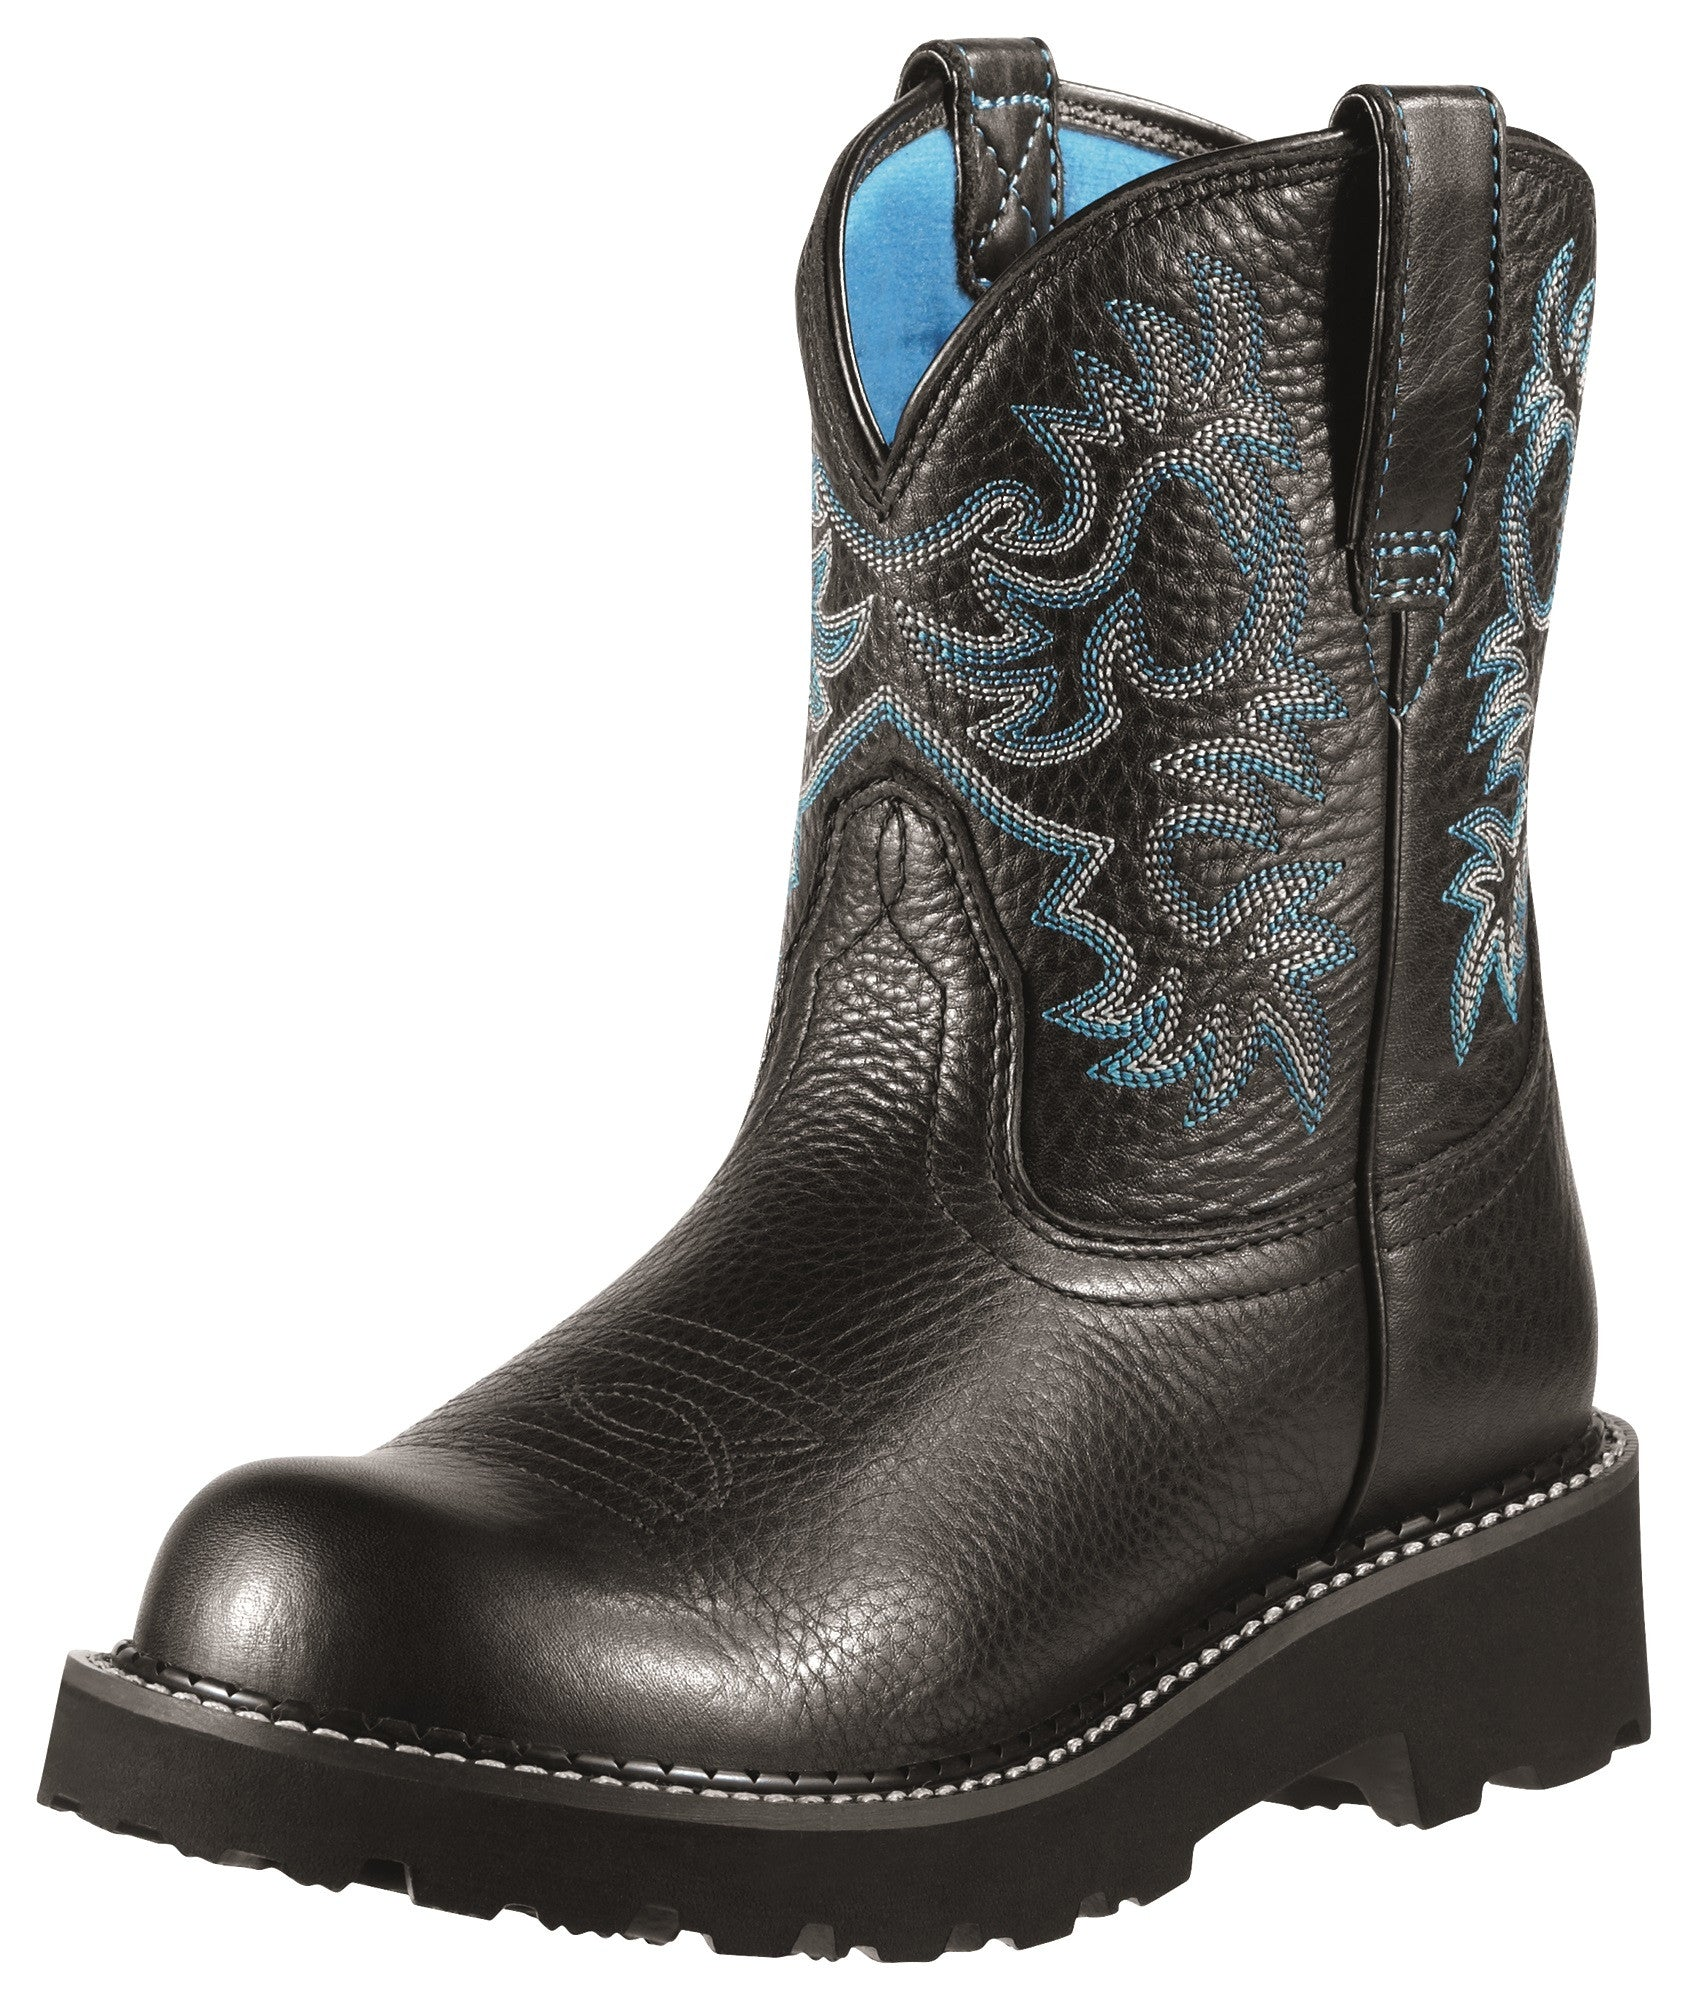 Women's Ariat Fatbaby Original Boot #10000833